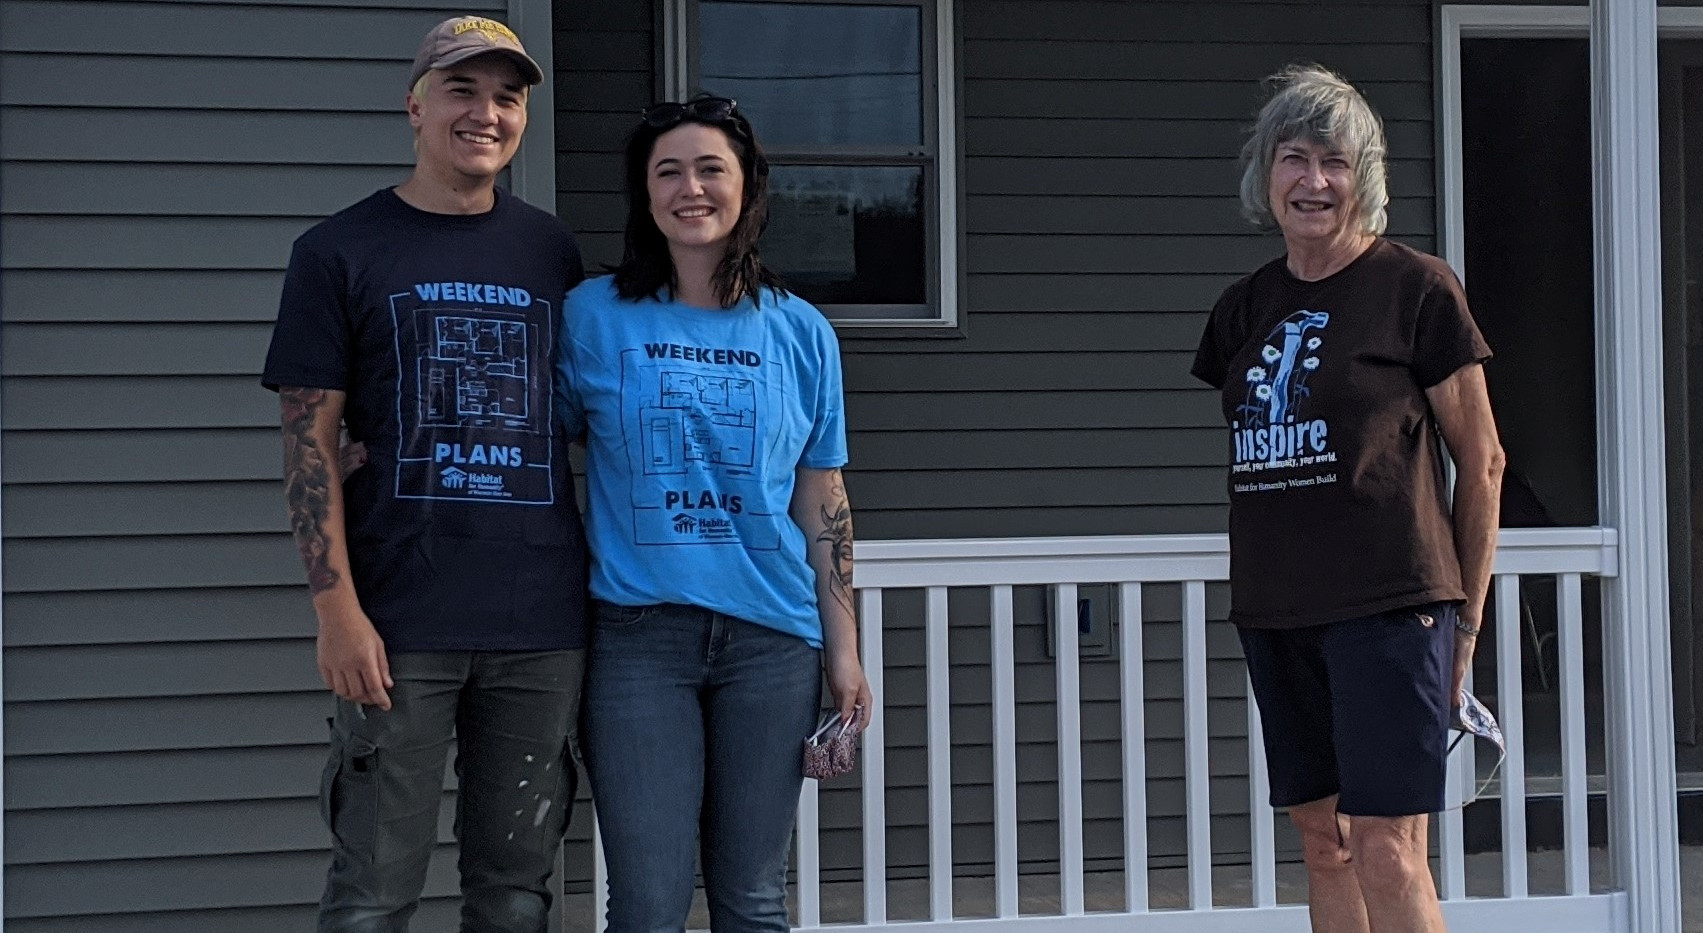 Mike and Akira with mentor Lila at new Portage build